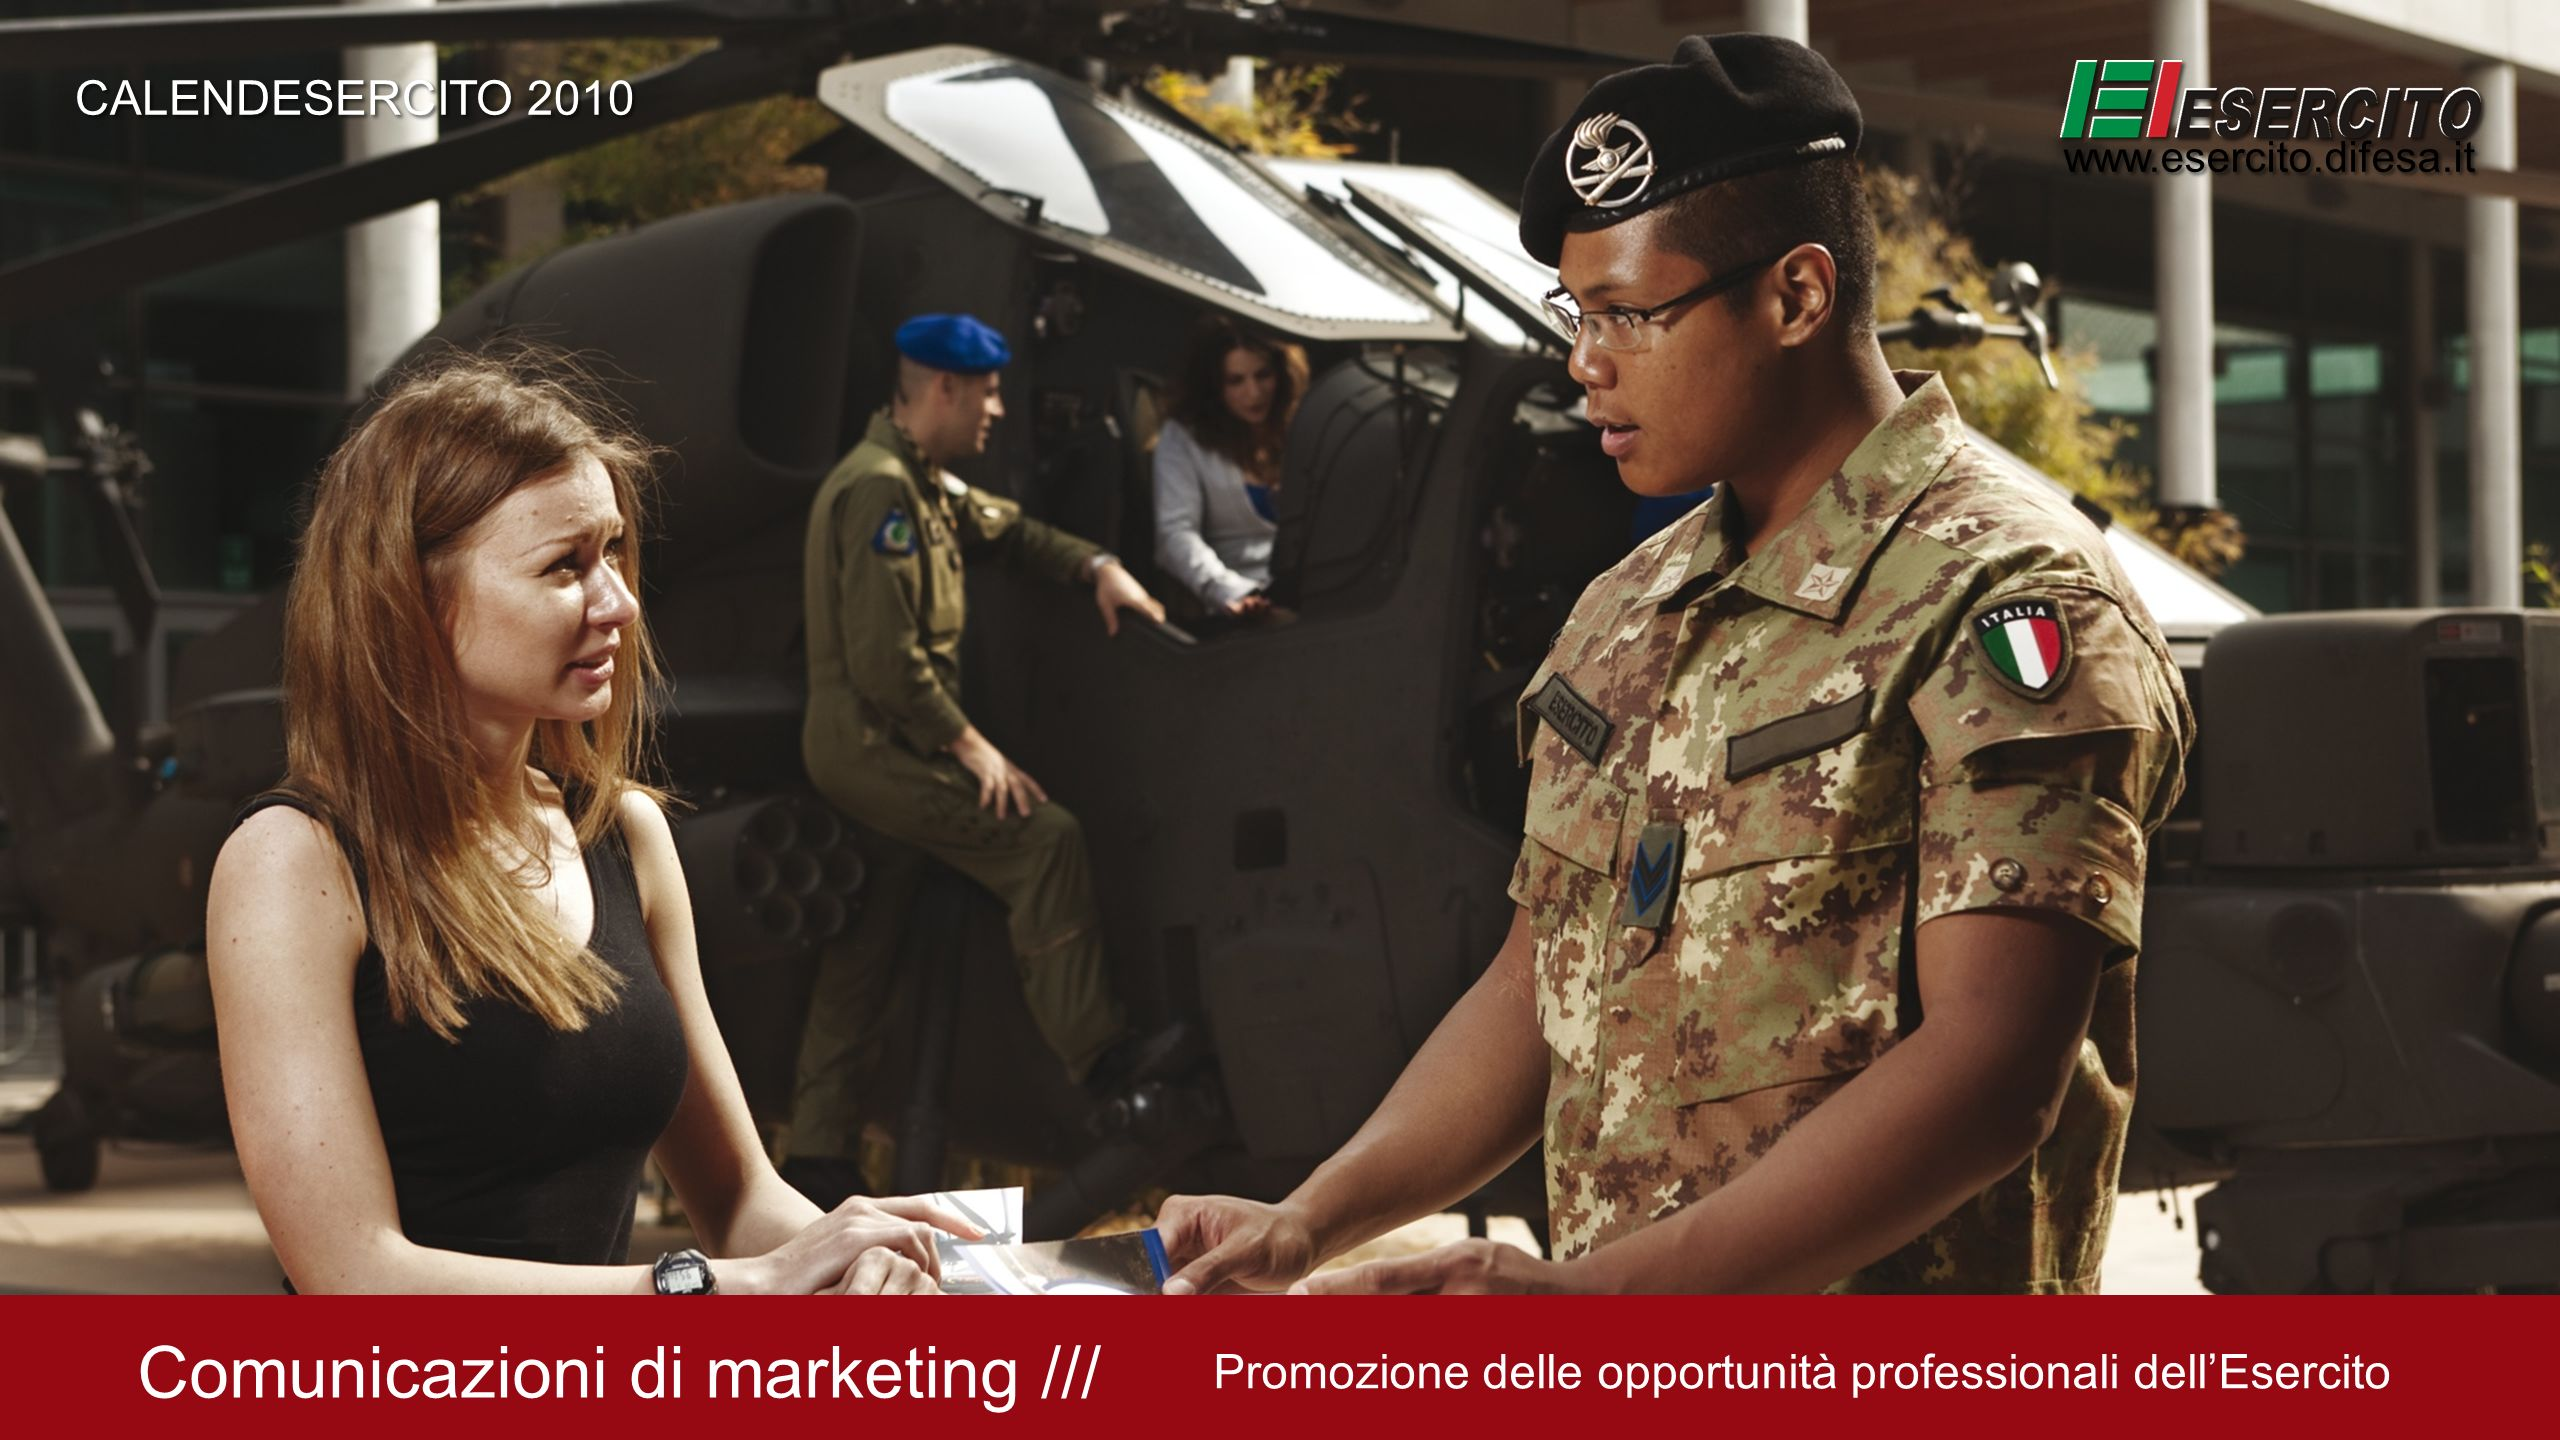 Comunicazioni di marketing ///